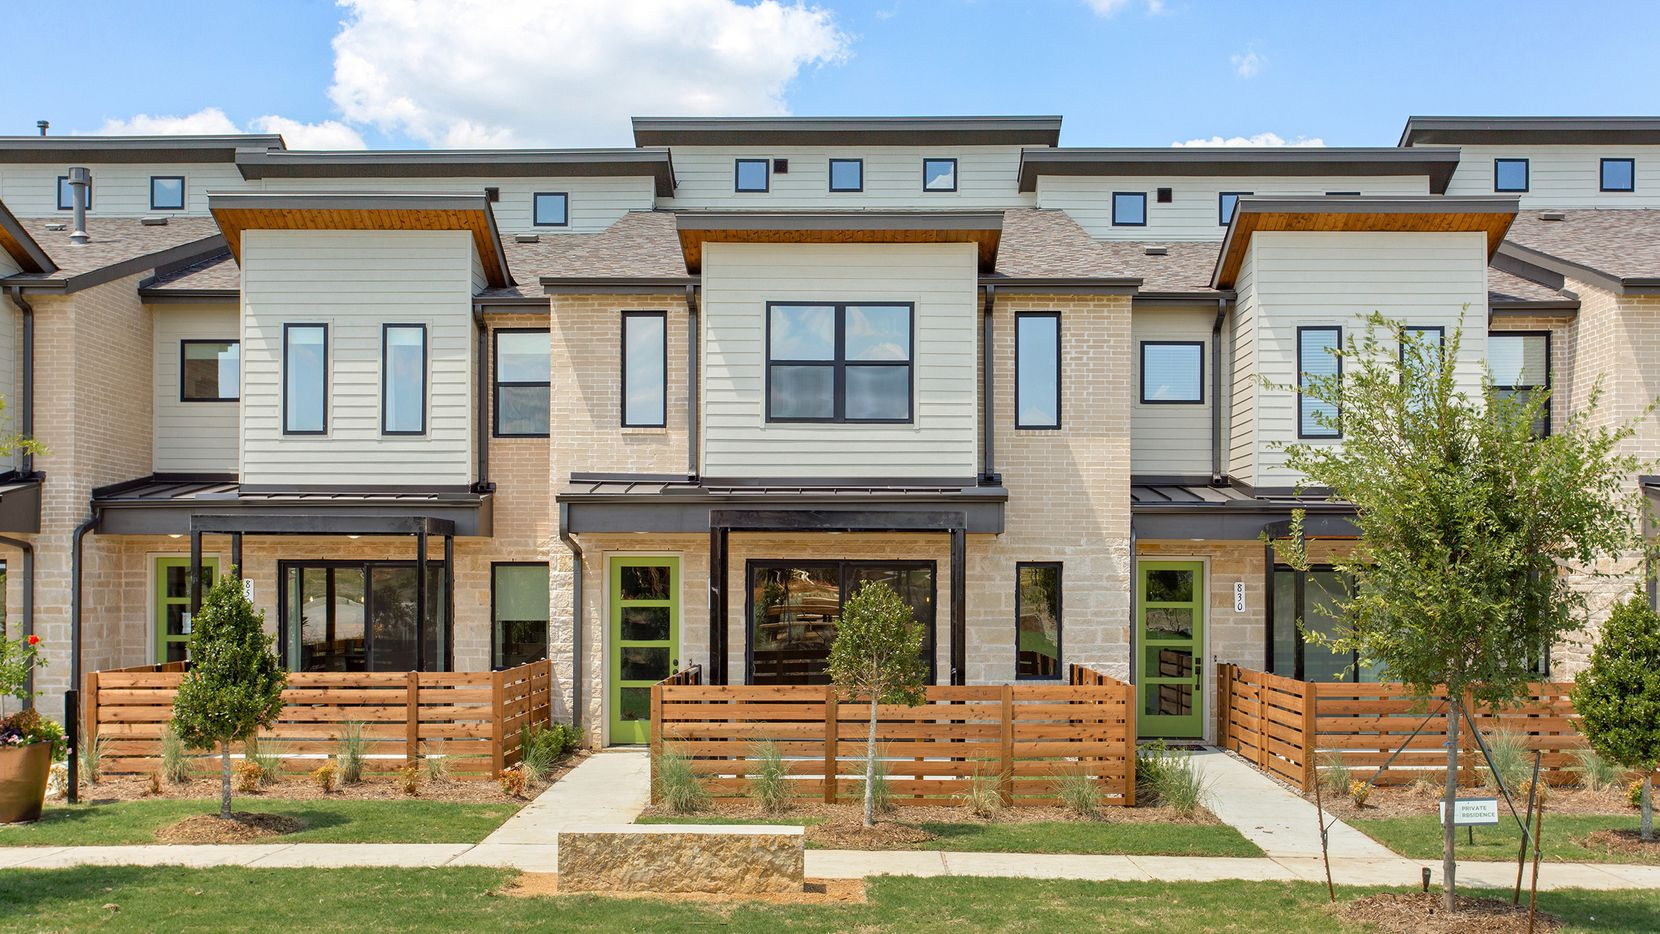 New townhomes by Grenadier Homes are ready for immediate move-in at Windsong Ranch in Prosper. They are priced from the mid-$200s.